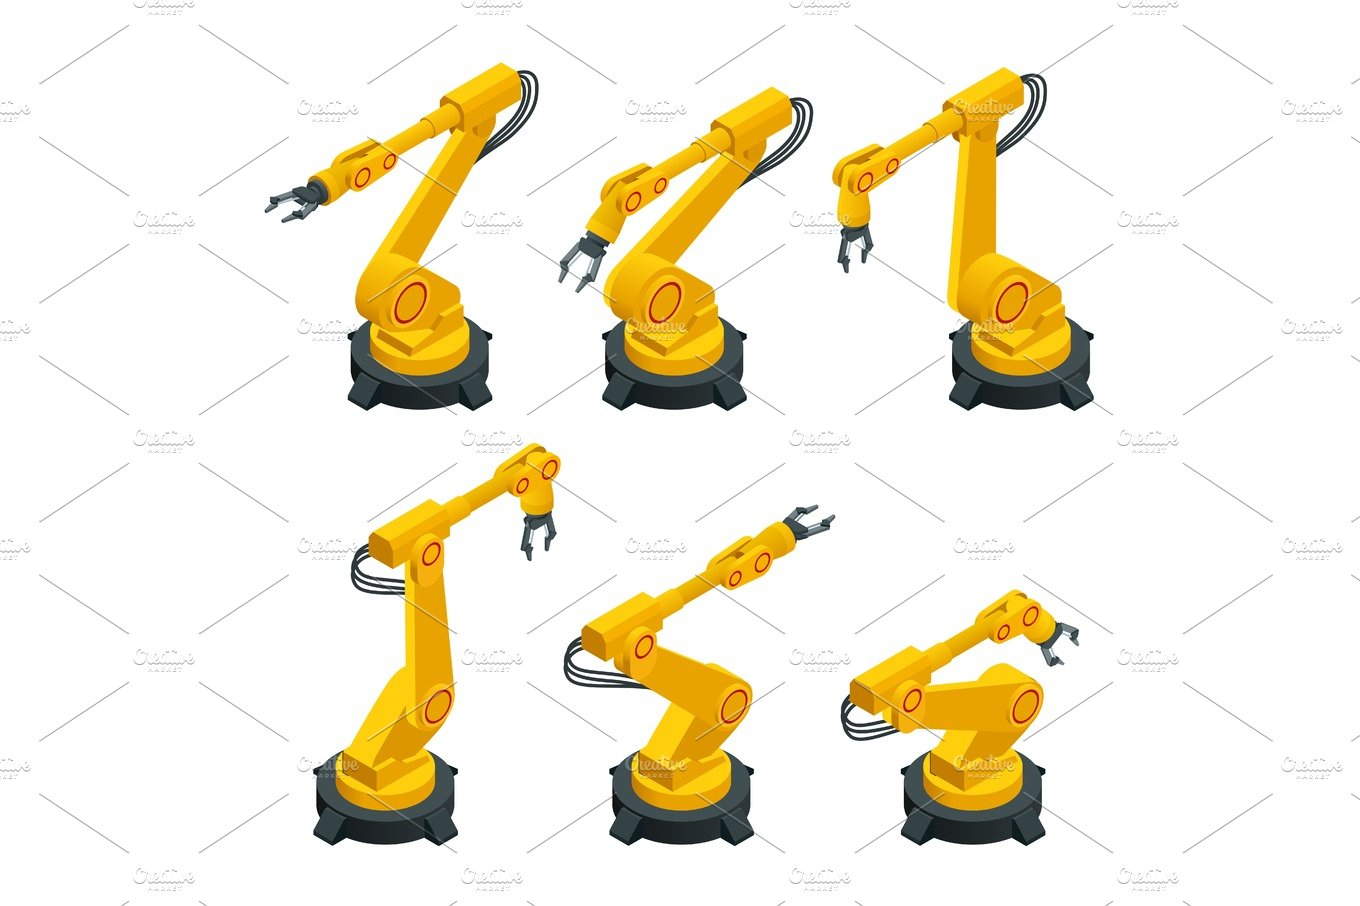 Project blueprint robotic arm illustrations creative market isometric robotic arm hand industrial robot flat vector icons set robotics industry insights malvernweather Gallery